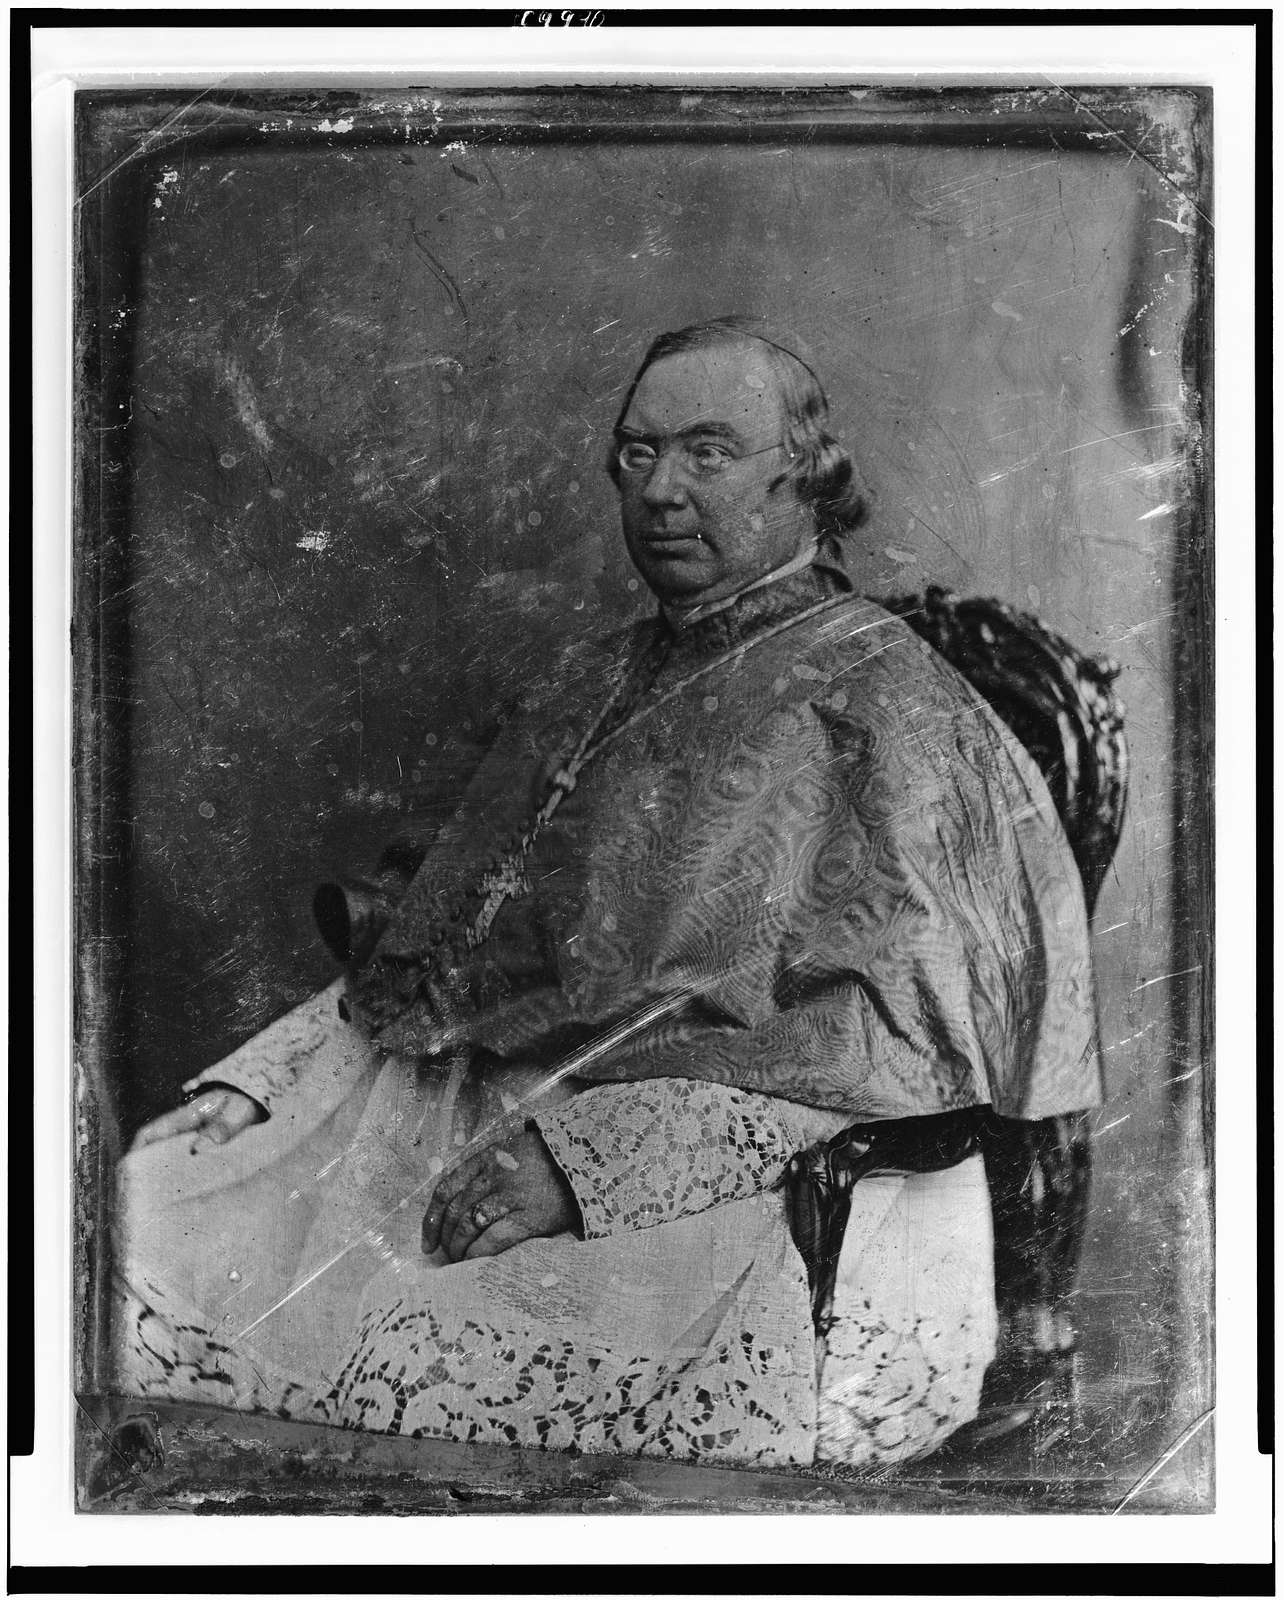 [Nicholas Patrick Wiseman, three-quarter length portrait, seated in armchair, three-quarters to the left, in clerical robe]